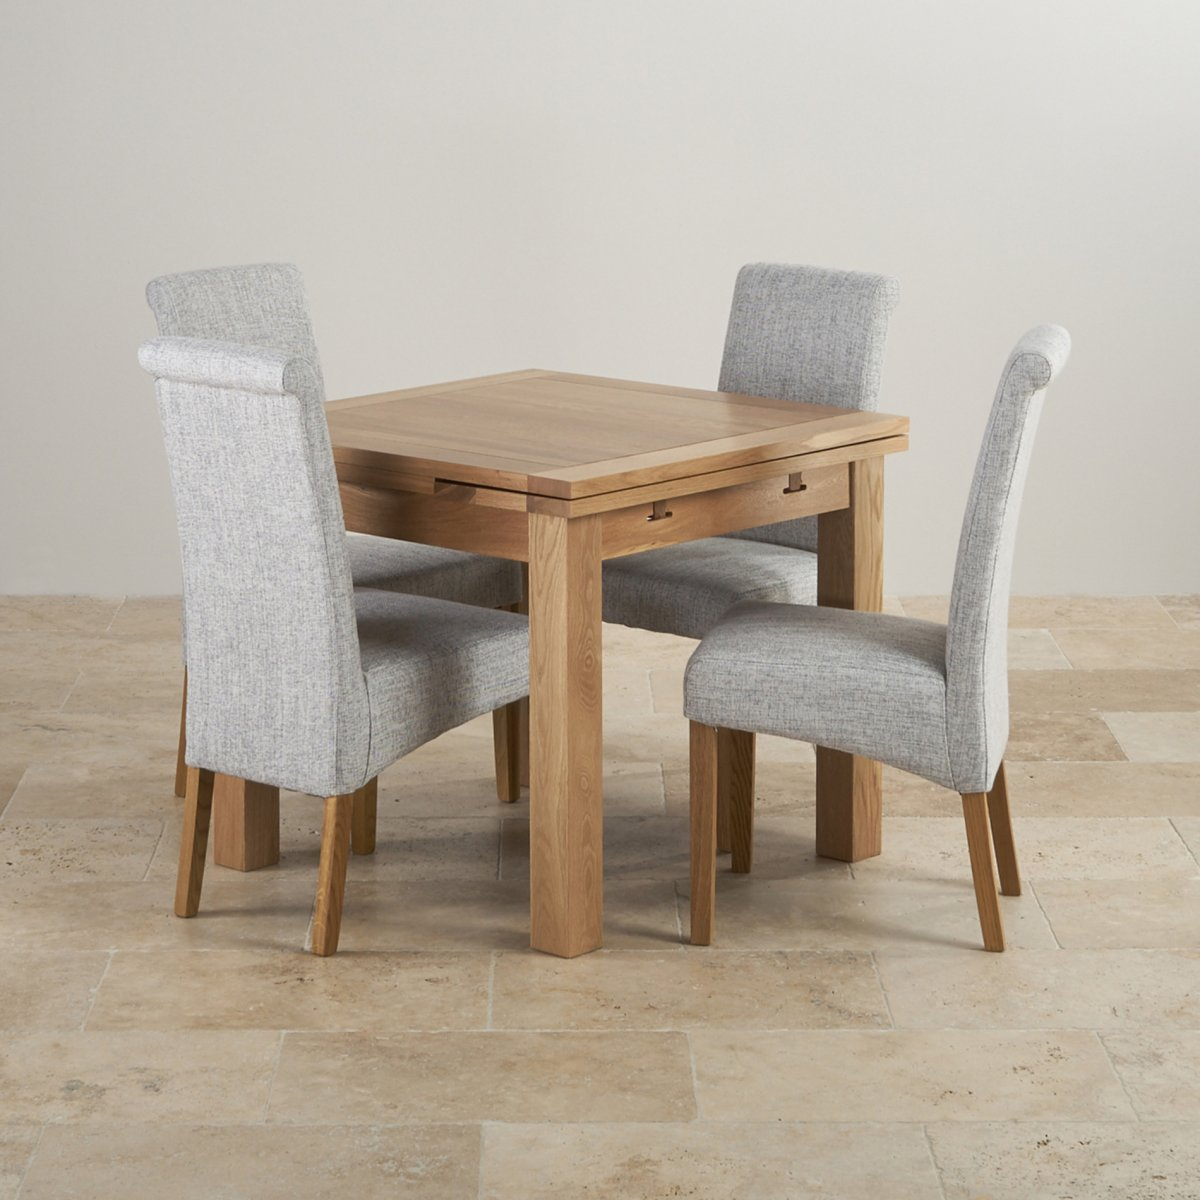 Dorset oak 3ft dining table with 4 grey fabric chairs for Four chair dining table